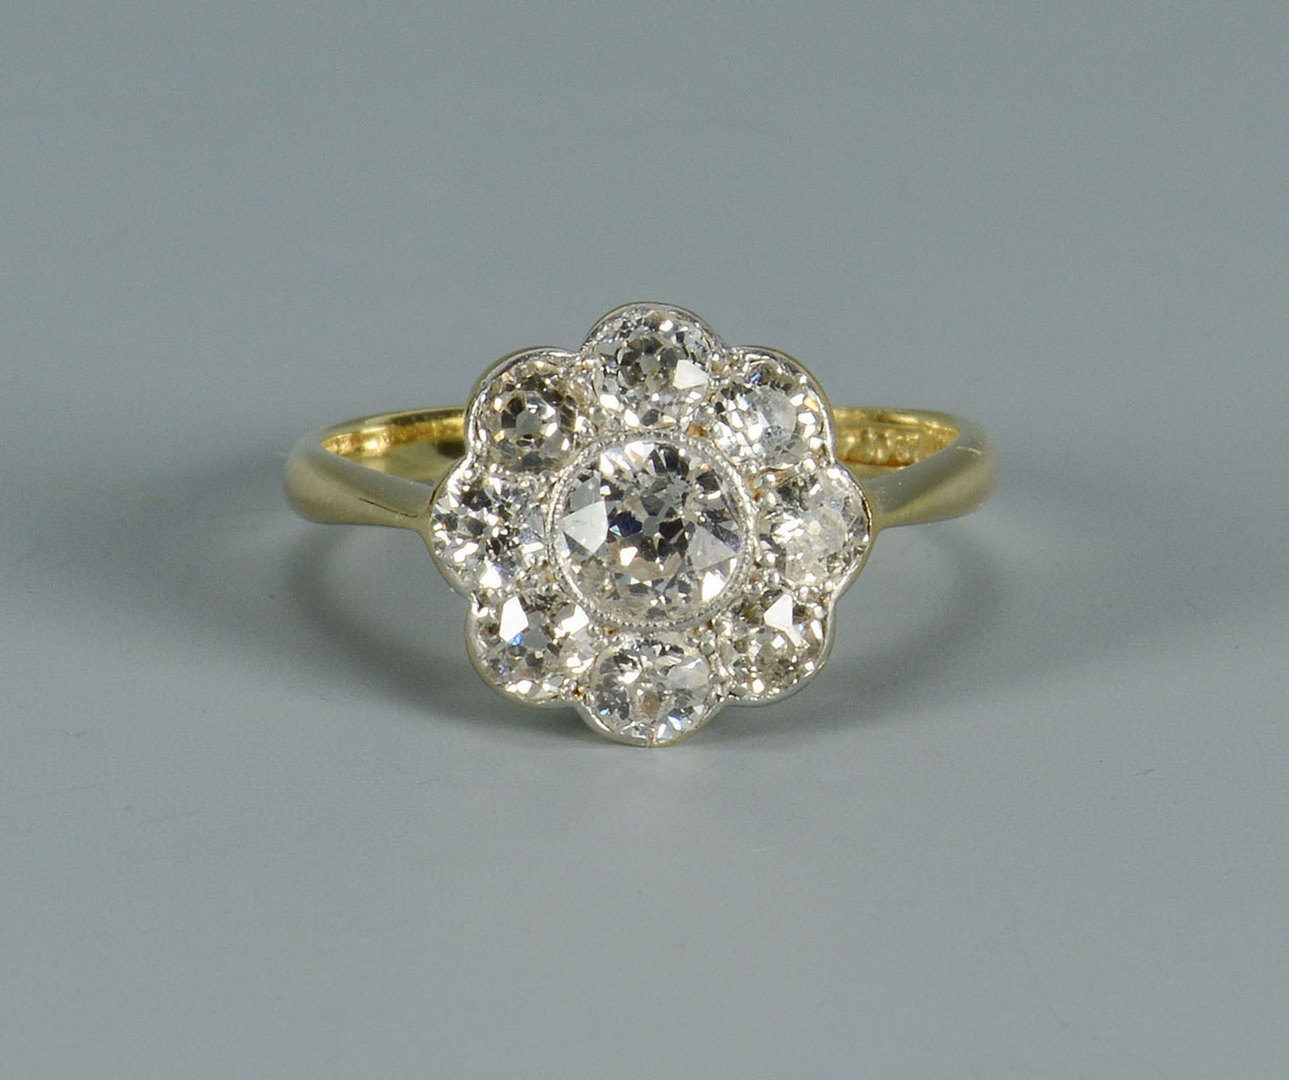 Lot 280: 18k gold and platinum Diamond Cluster Ring